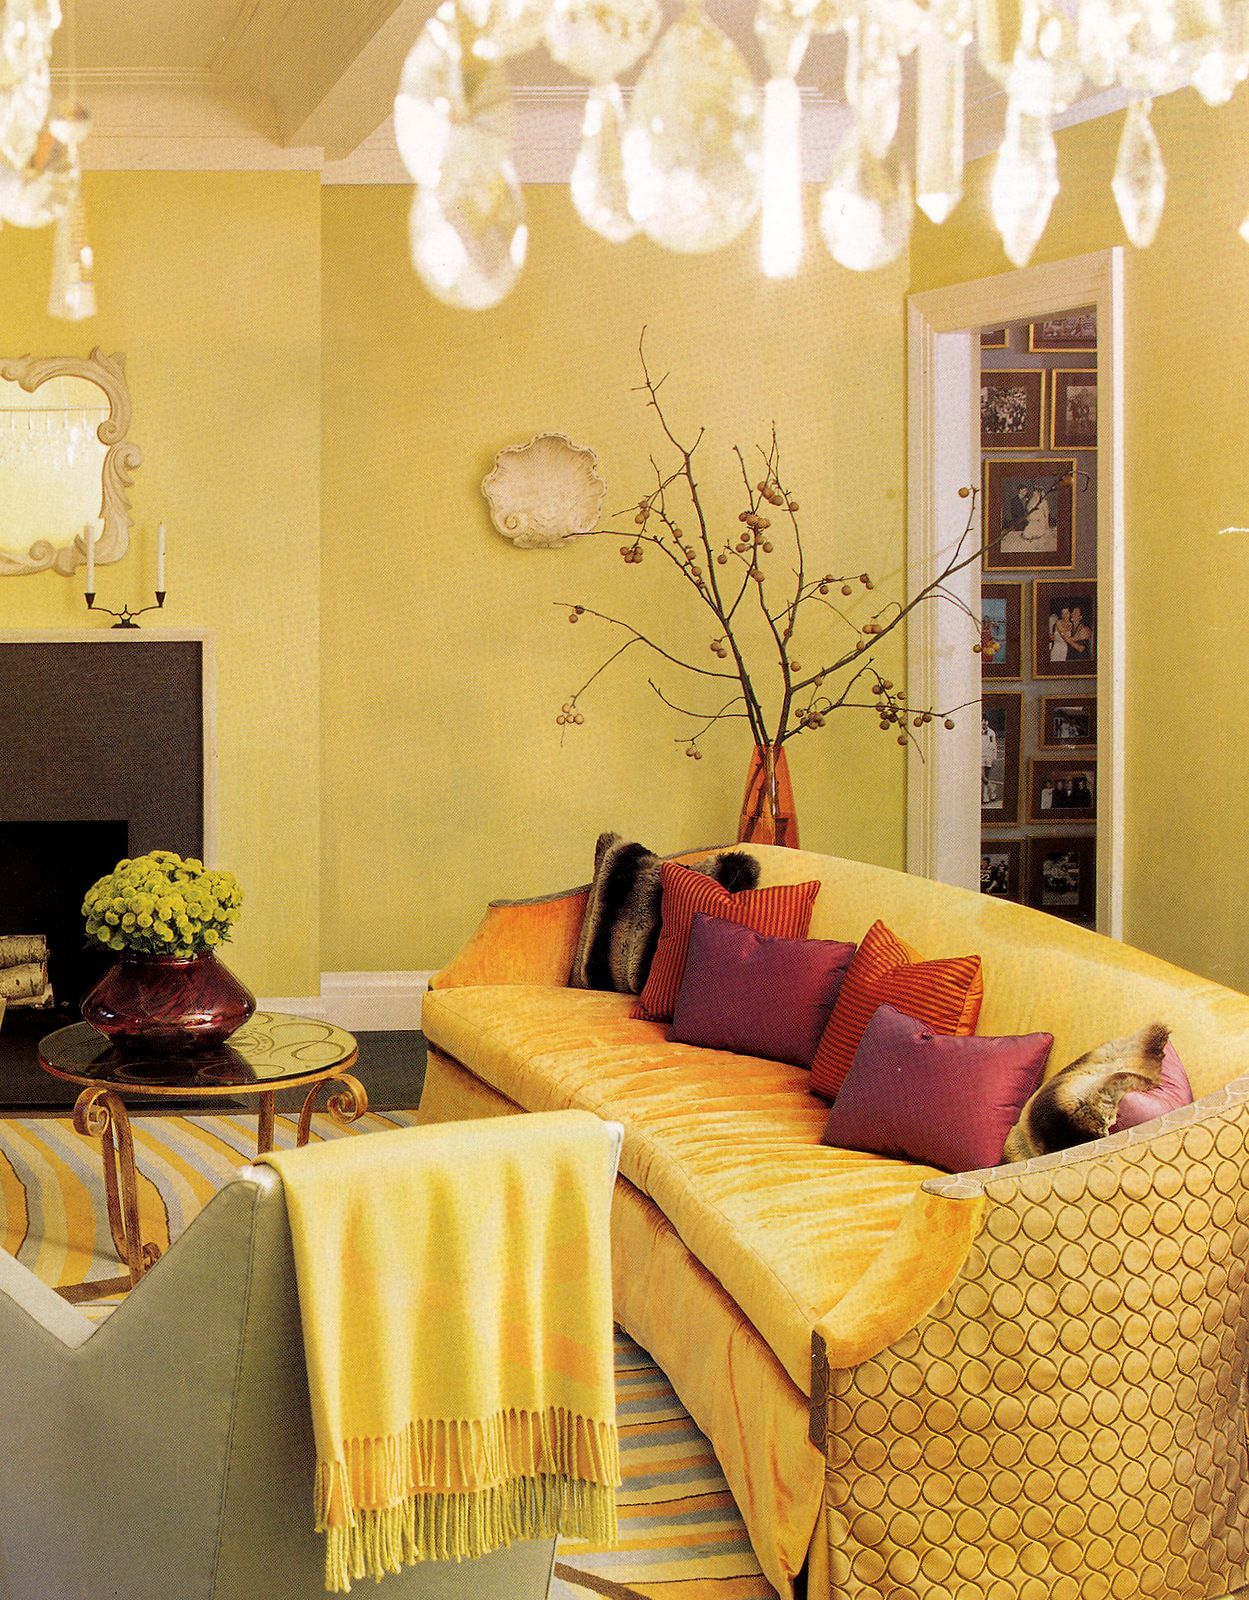 Eclectic Style Living Room In Citrus Shades Of Key Lime